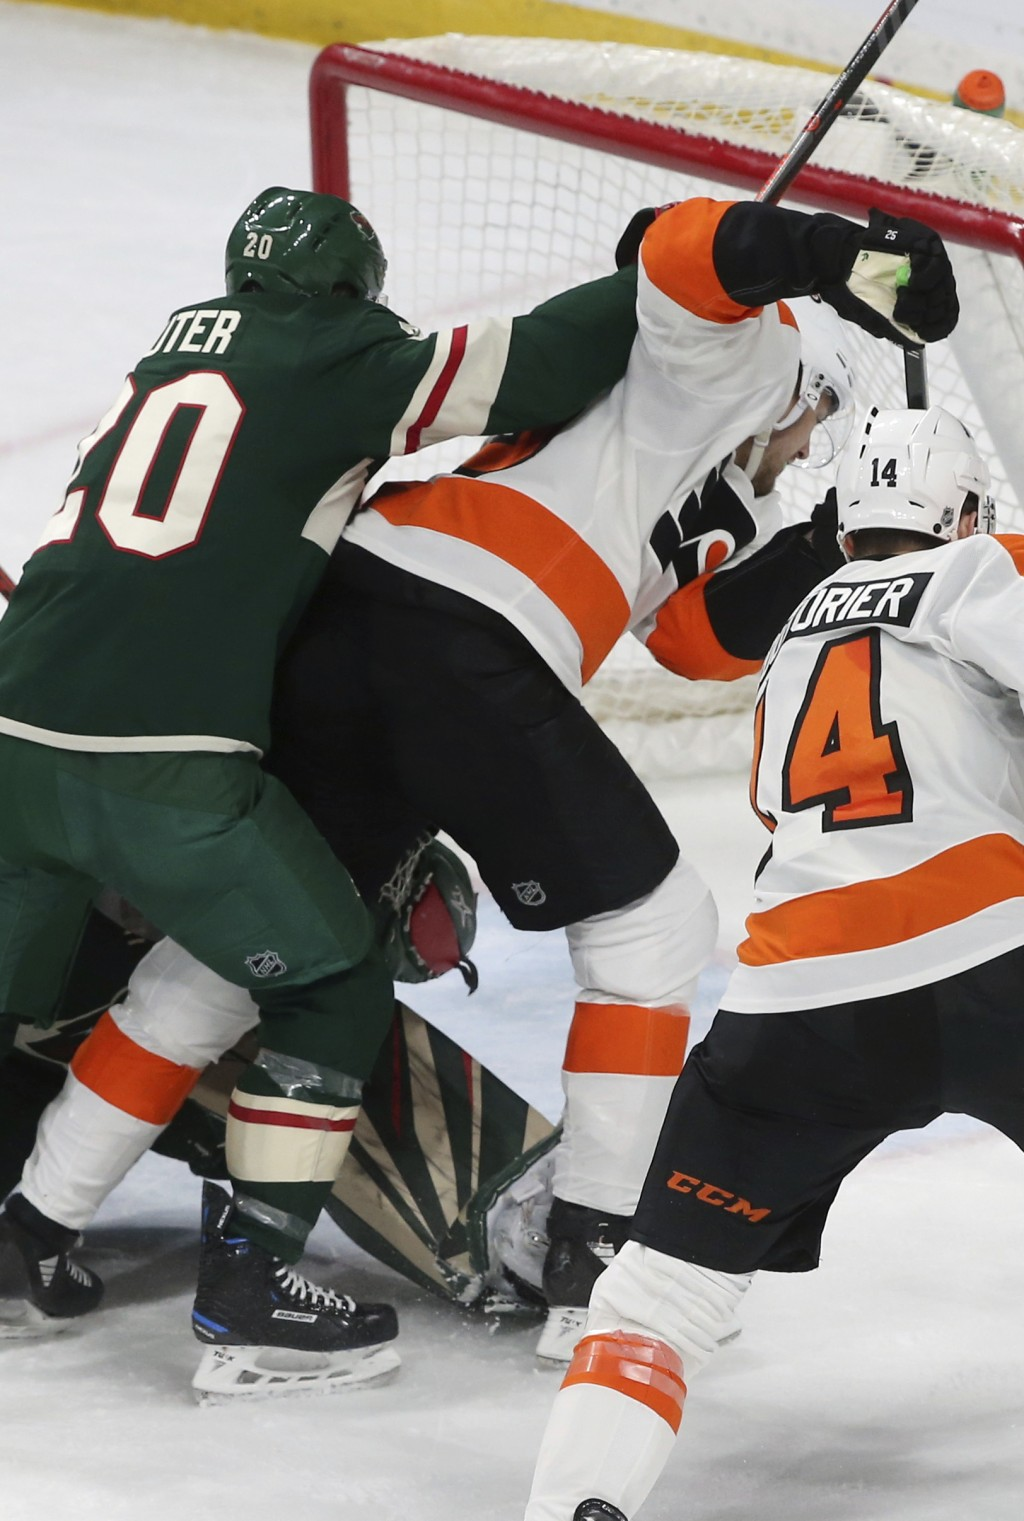 Philadelphia Flyers' James van Riemsdyk, right, is shoved by Minnesota Wild's Ryan Suter as he scores the go-ahead goal in the third period of an NHL